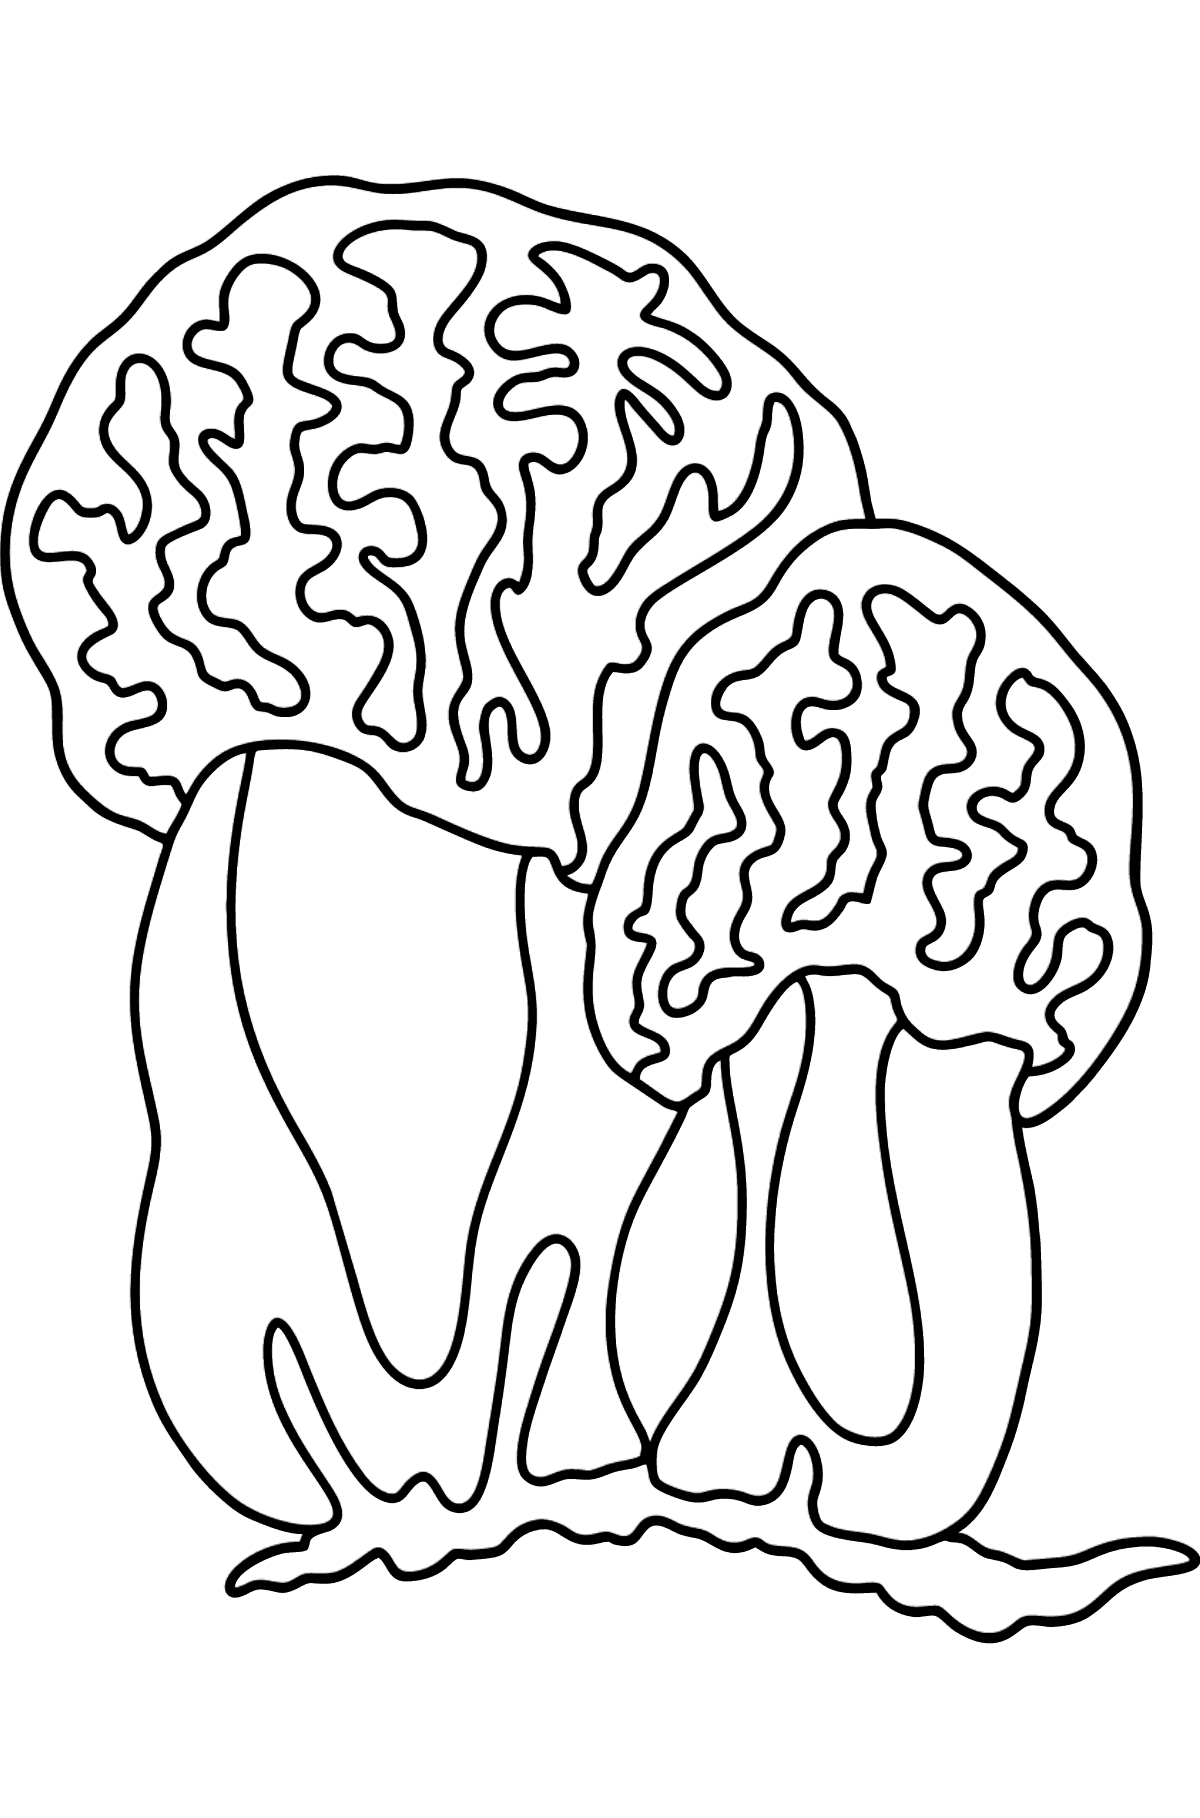 Morel coloring page - Coloring Pages for Kids